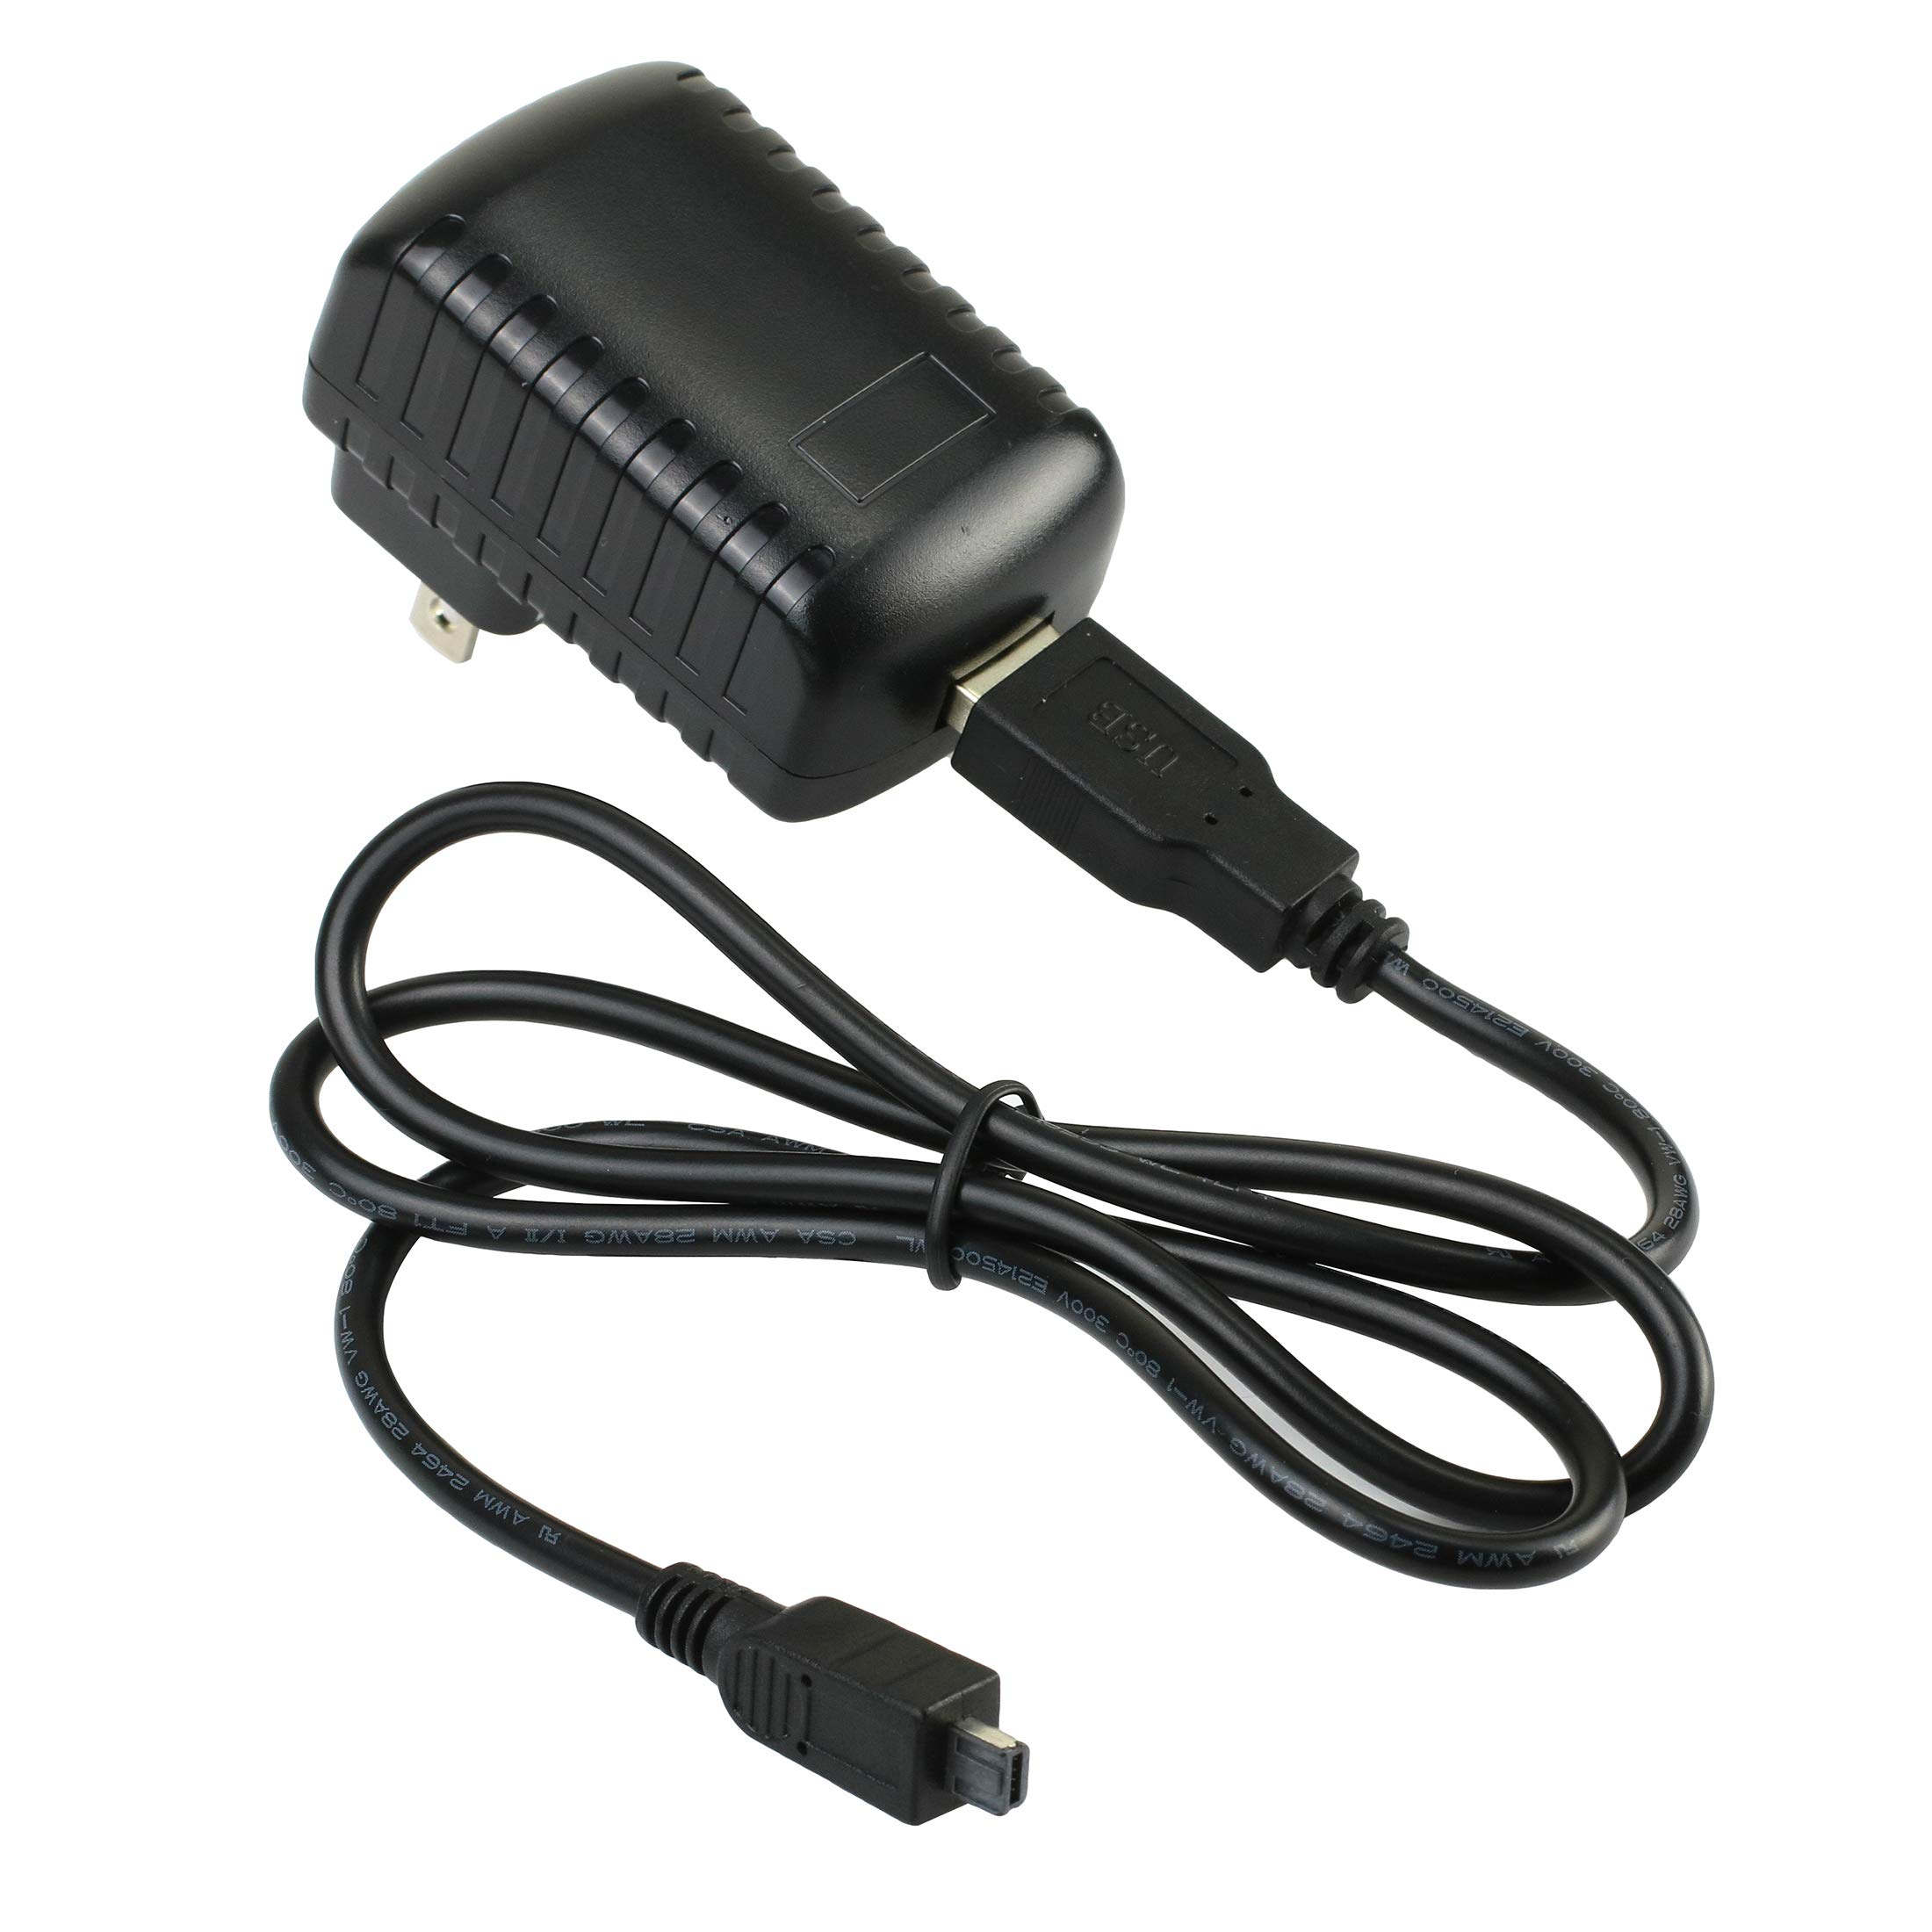 CMI Health AC Power Adapter | ONLY Compatible with CMI Handheld Pulse Oximeter Model PC-66H